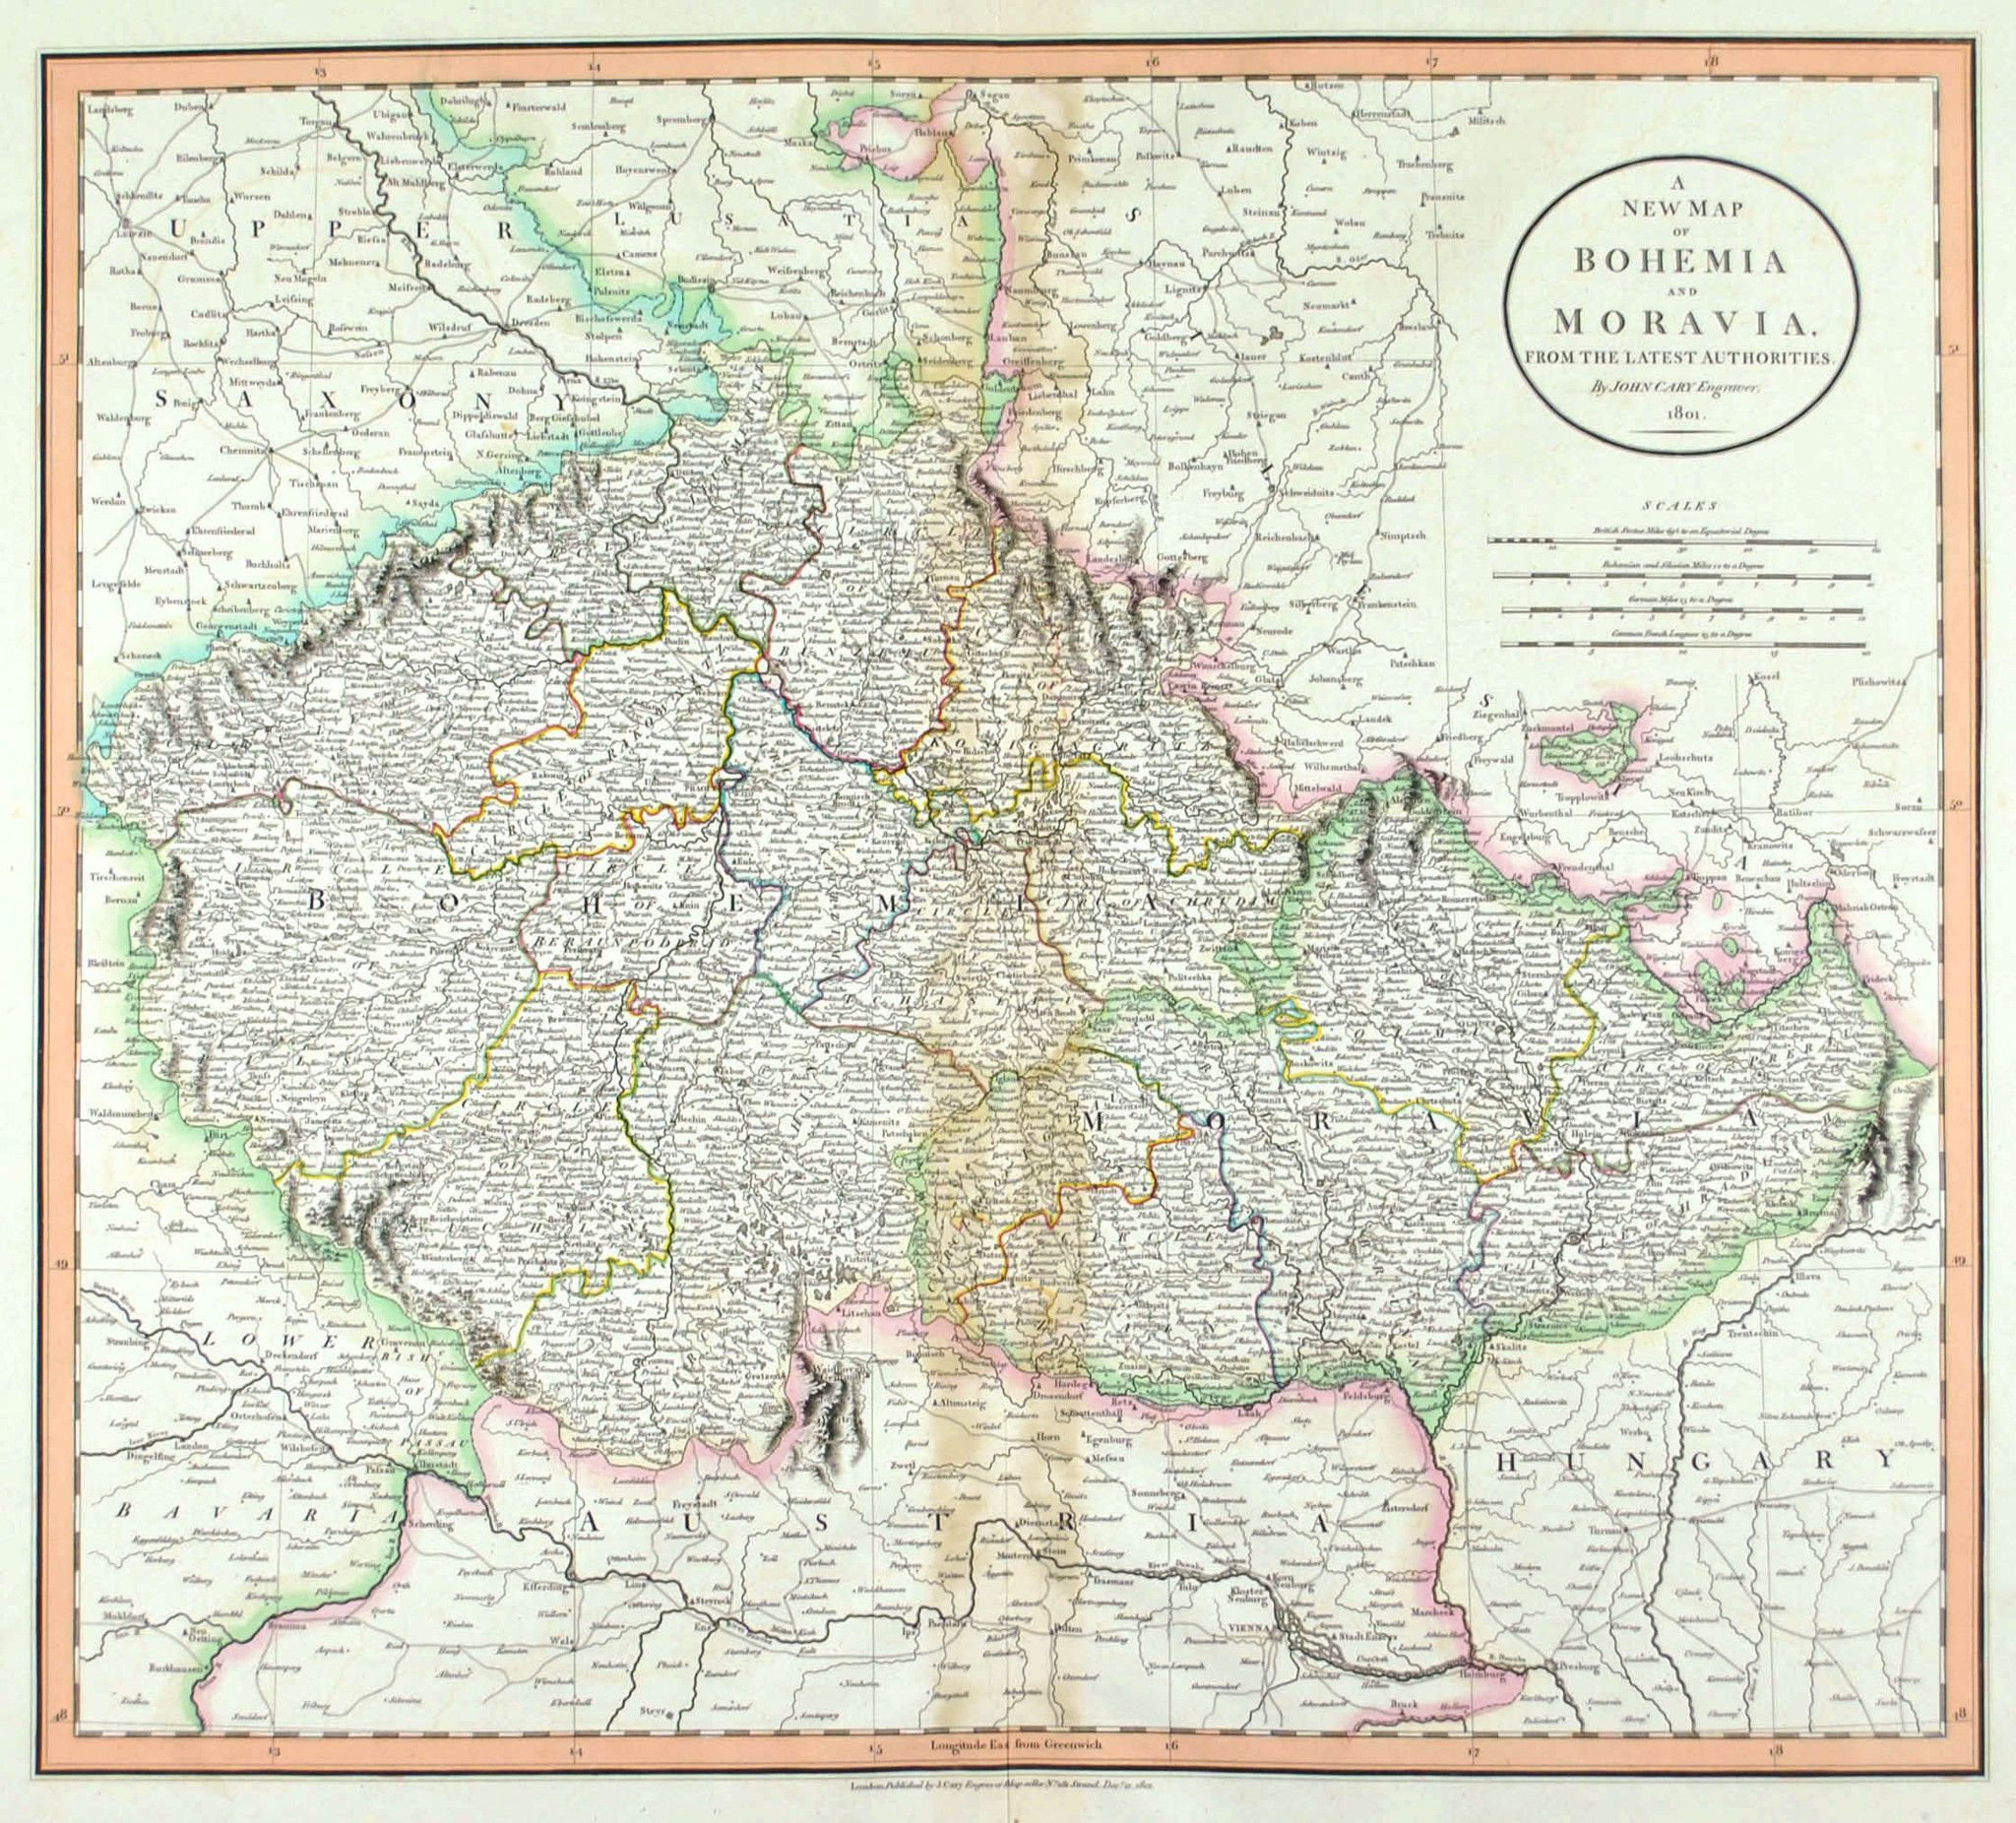 A New Map Of Bohemia And Moravia